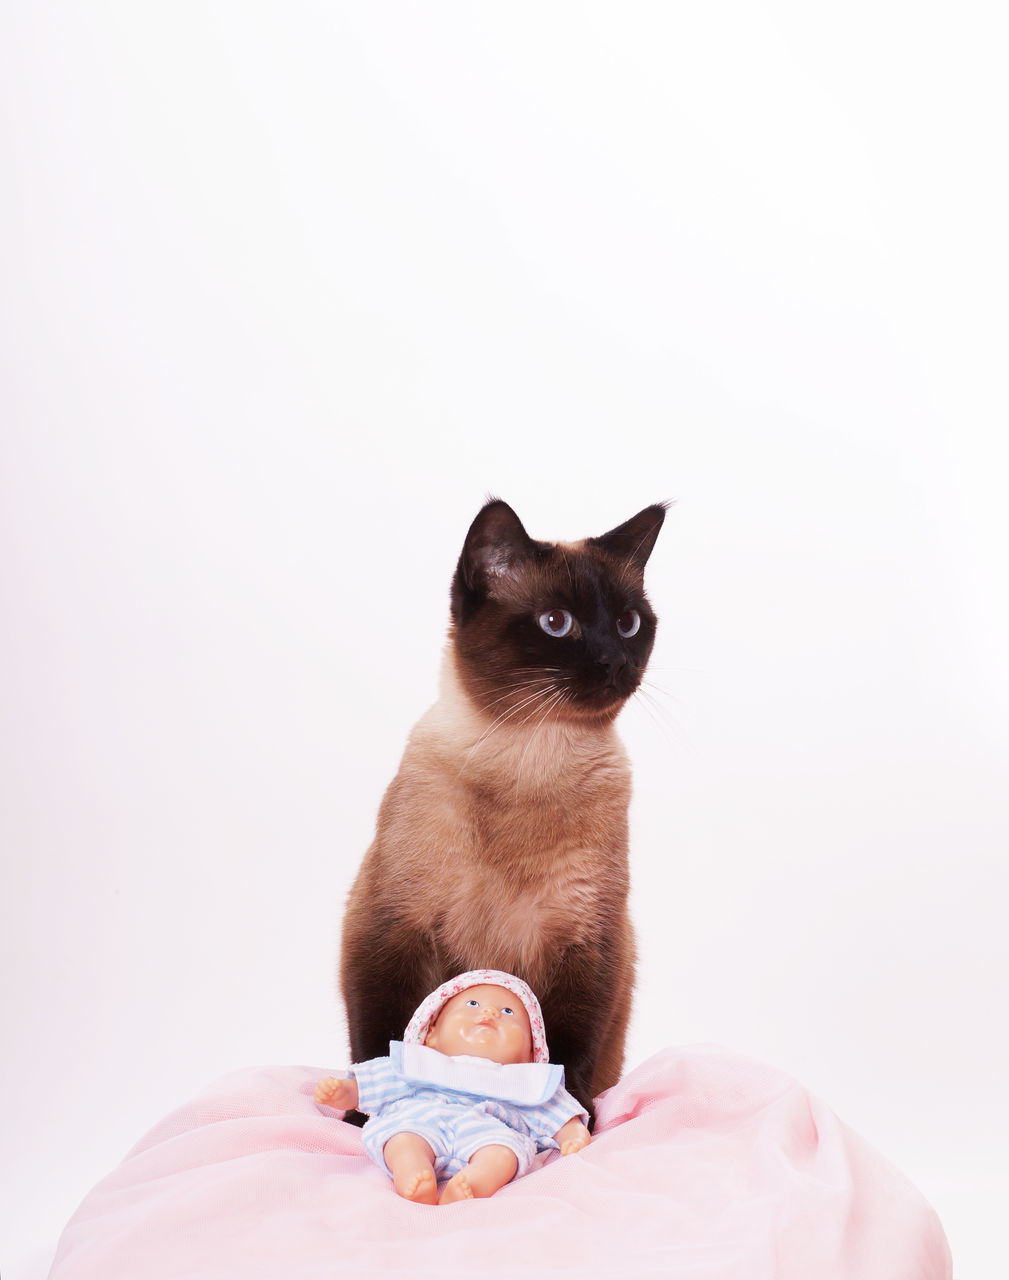 Siamese Cat With Doll On Blanket Against White Background